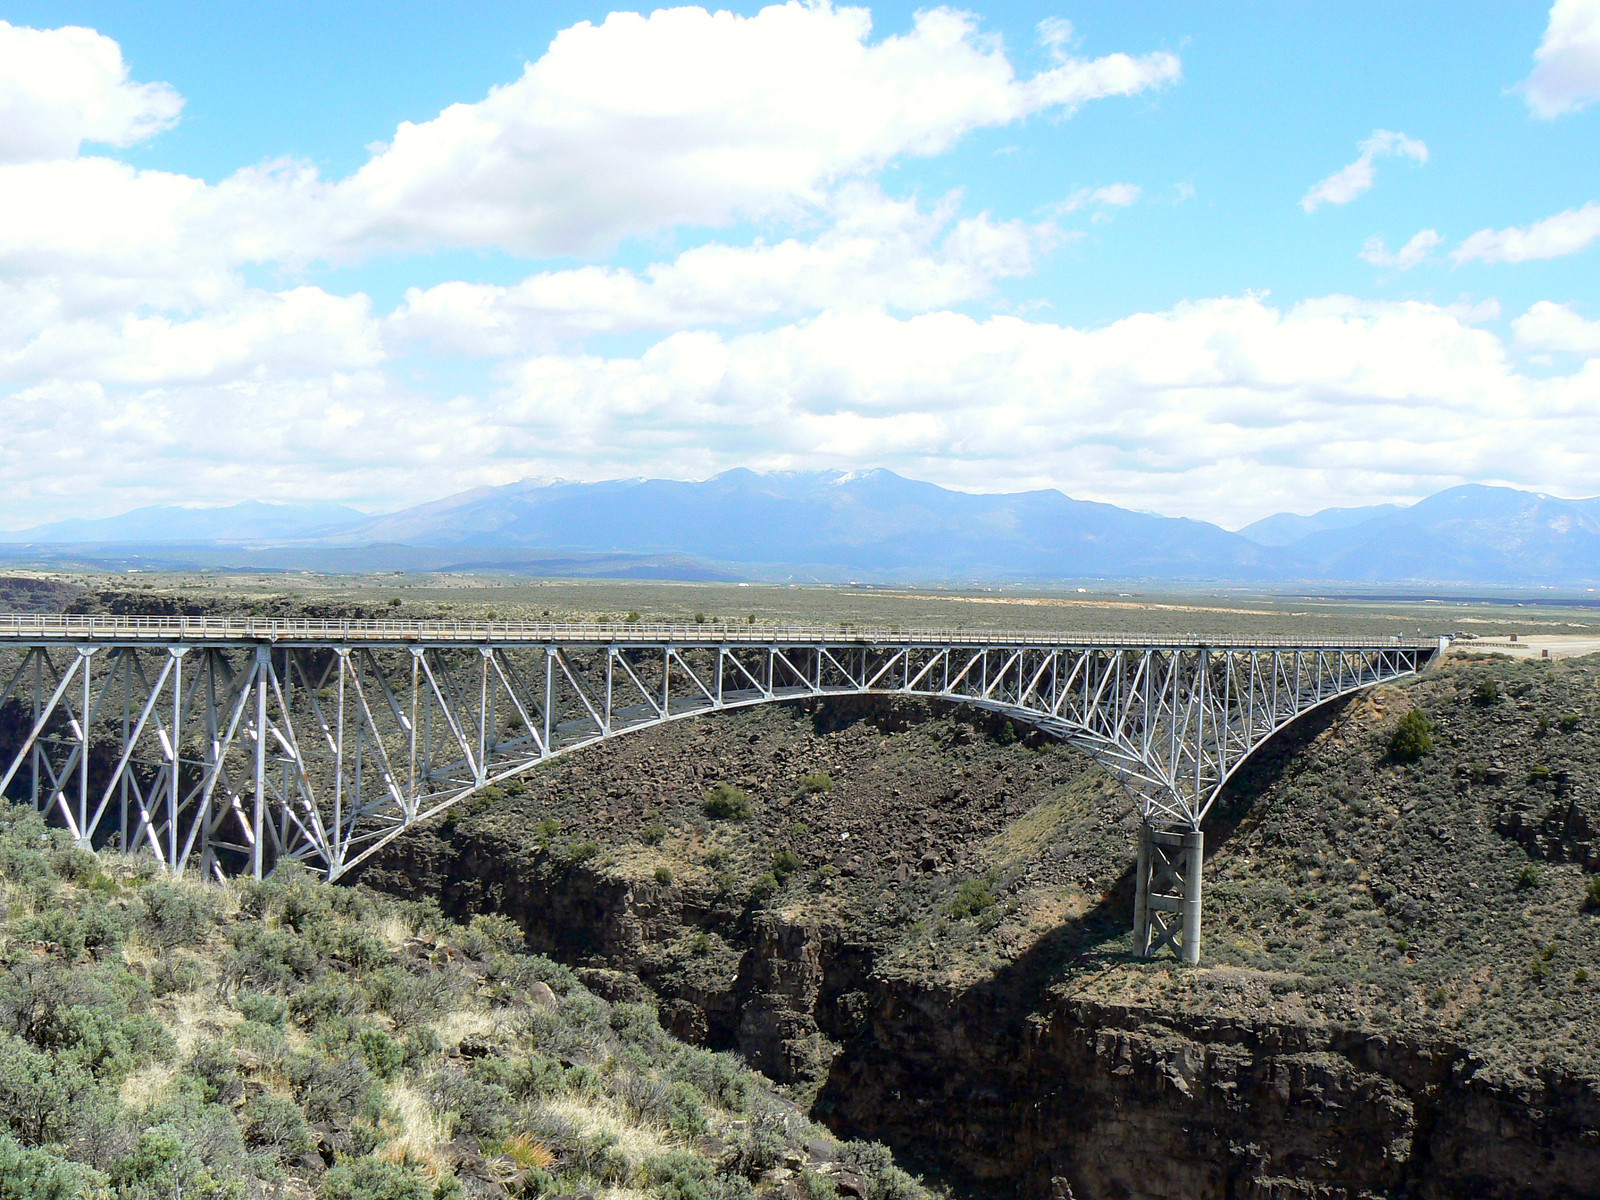 Explore the Rio Grande Gorge Bridge while driving the Enchanted Circle Highway near Taos, New Mexico